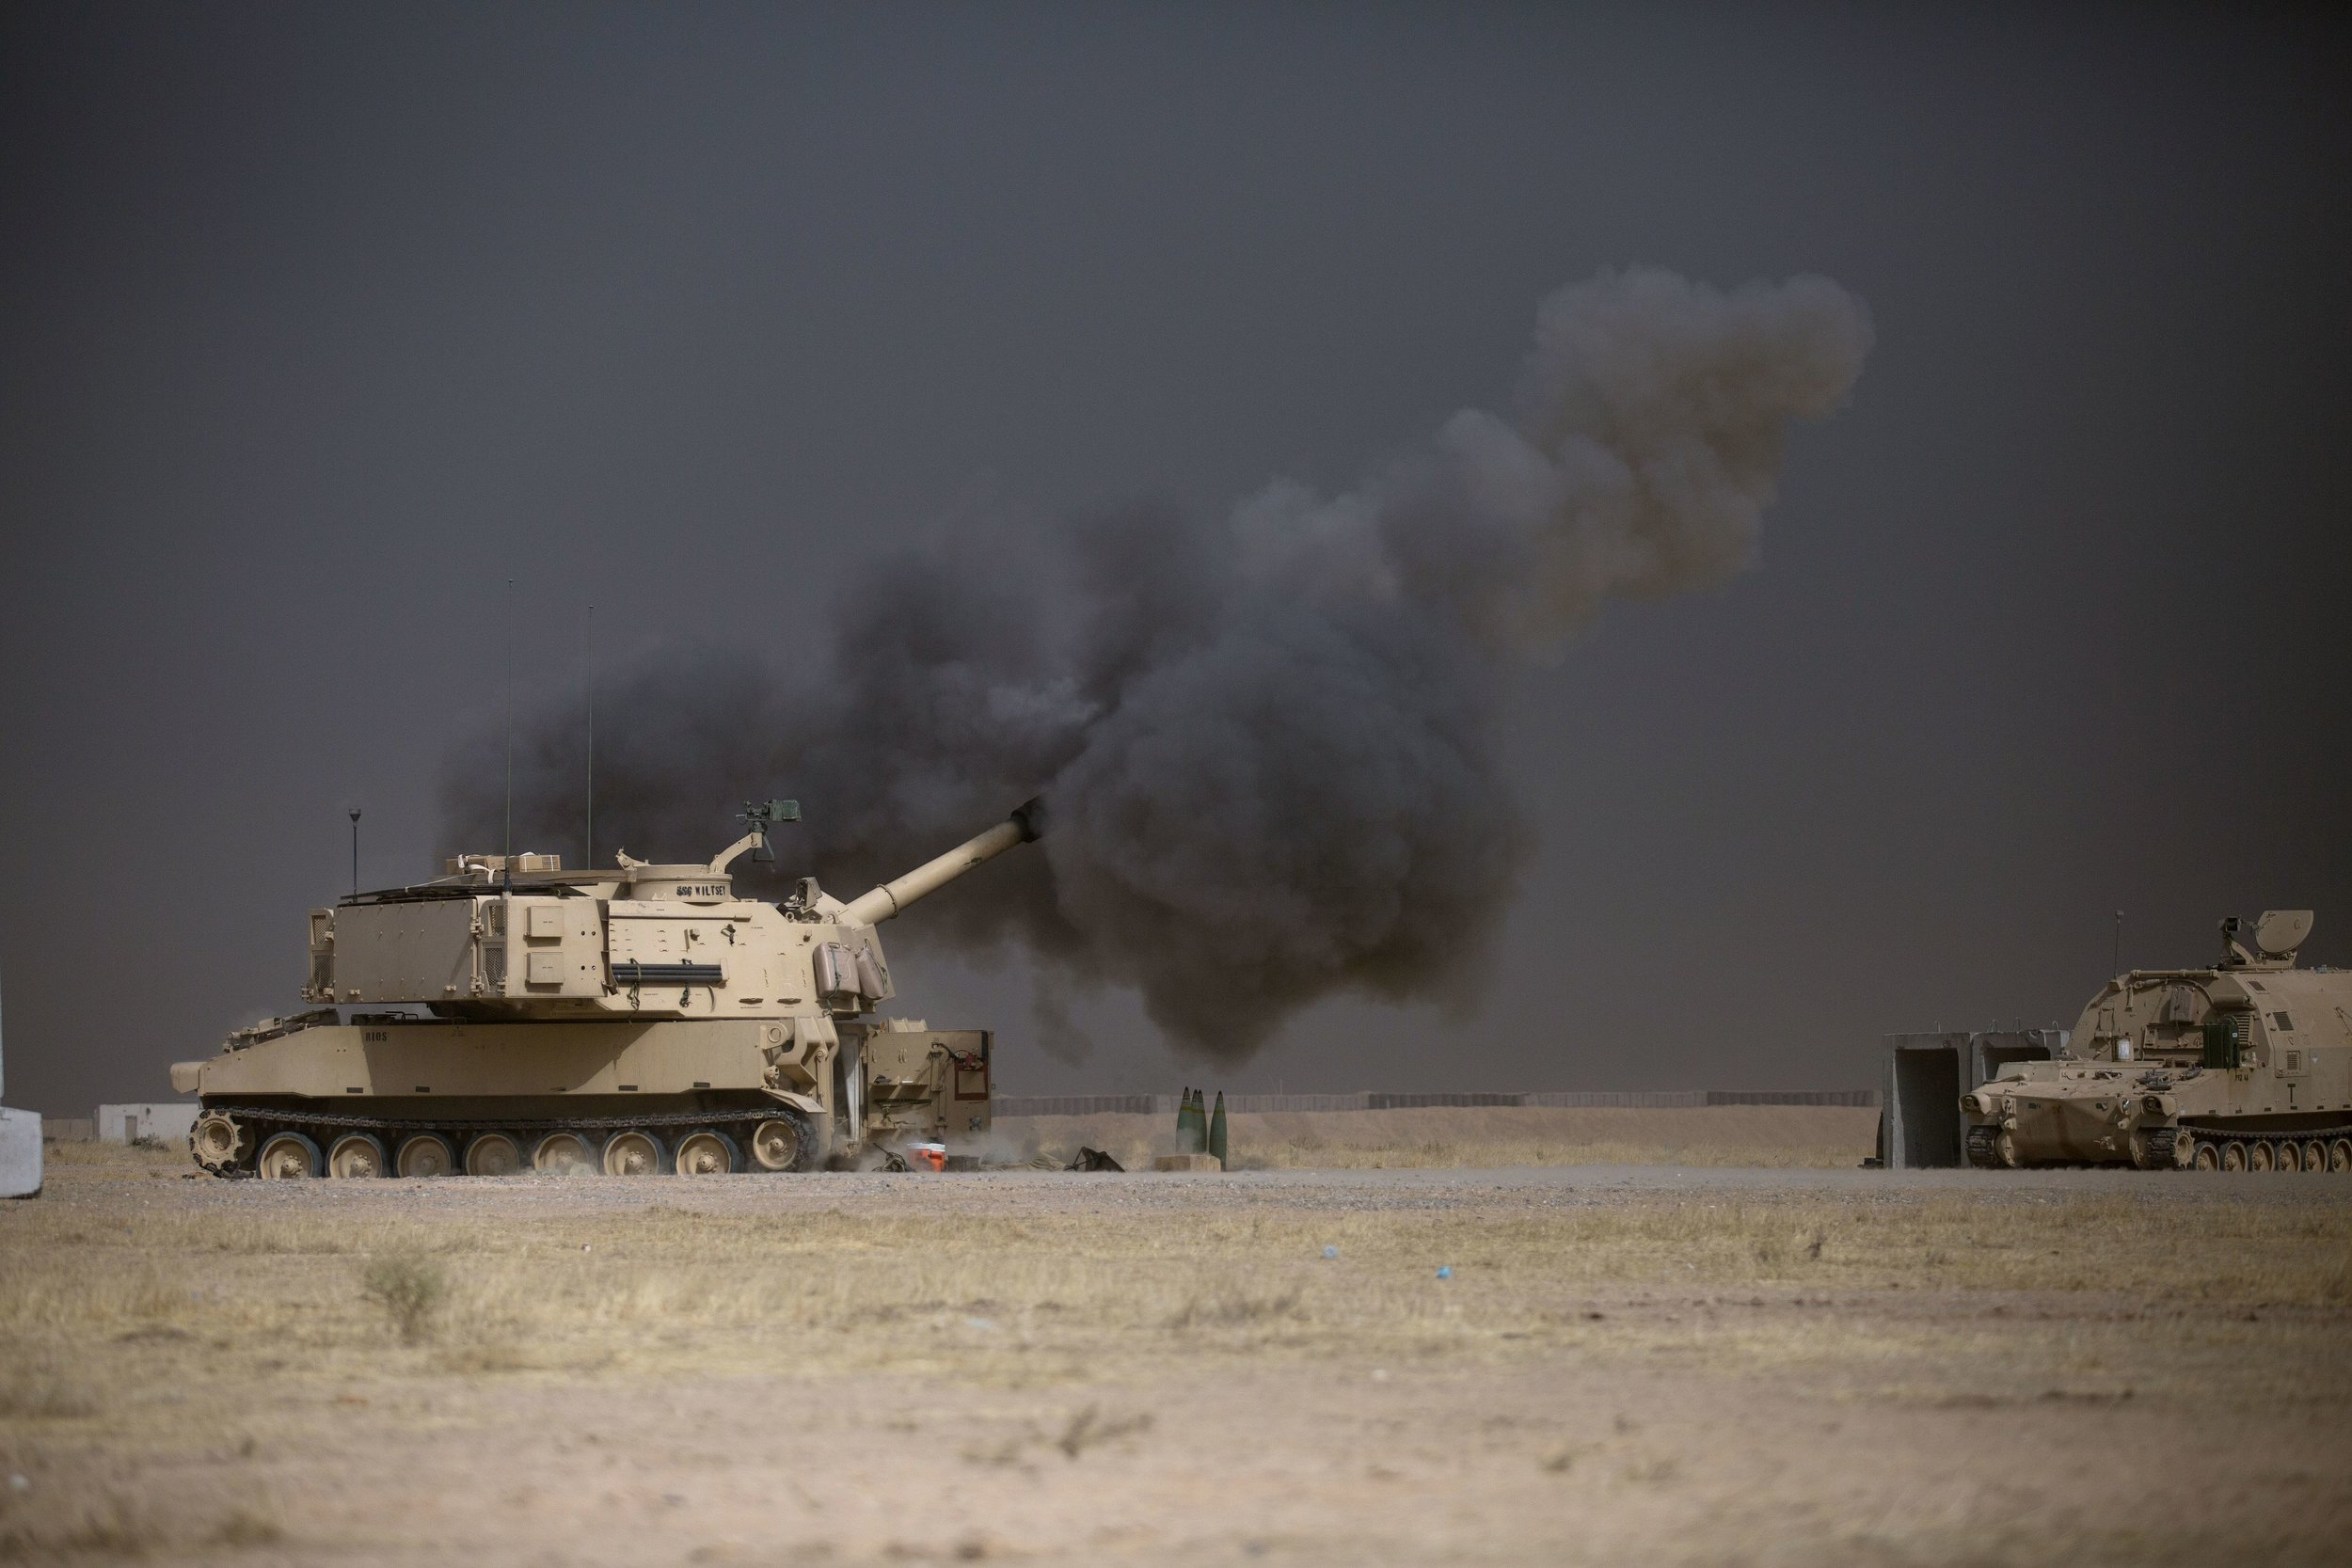 A U.S. Army M109A6 Paladin conducts a fire mission at Qayyarah West, Iraq, in support of the Iraqi security forces' push toward Mosul, Oct. 17, 2016. (U.S. Army photo by Spc. Christopher Brecht)